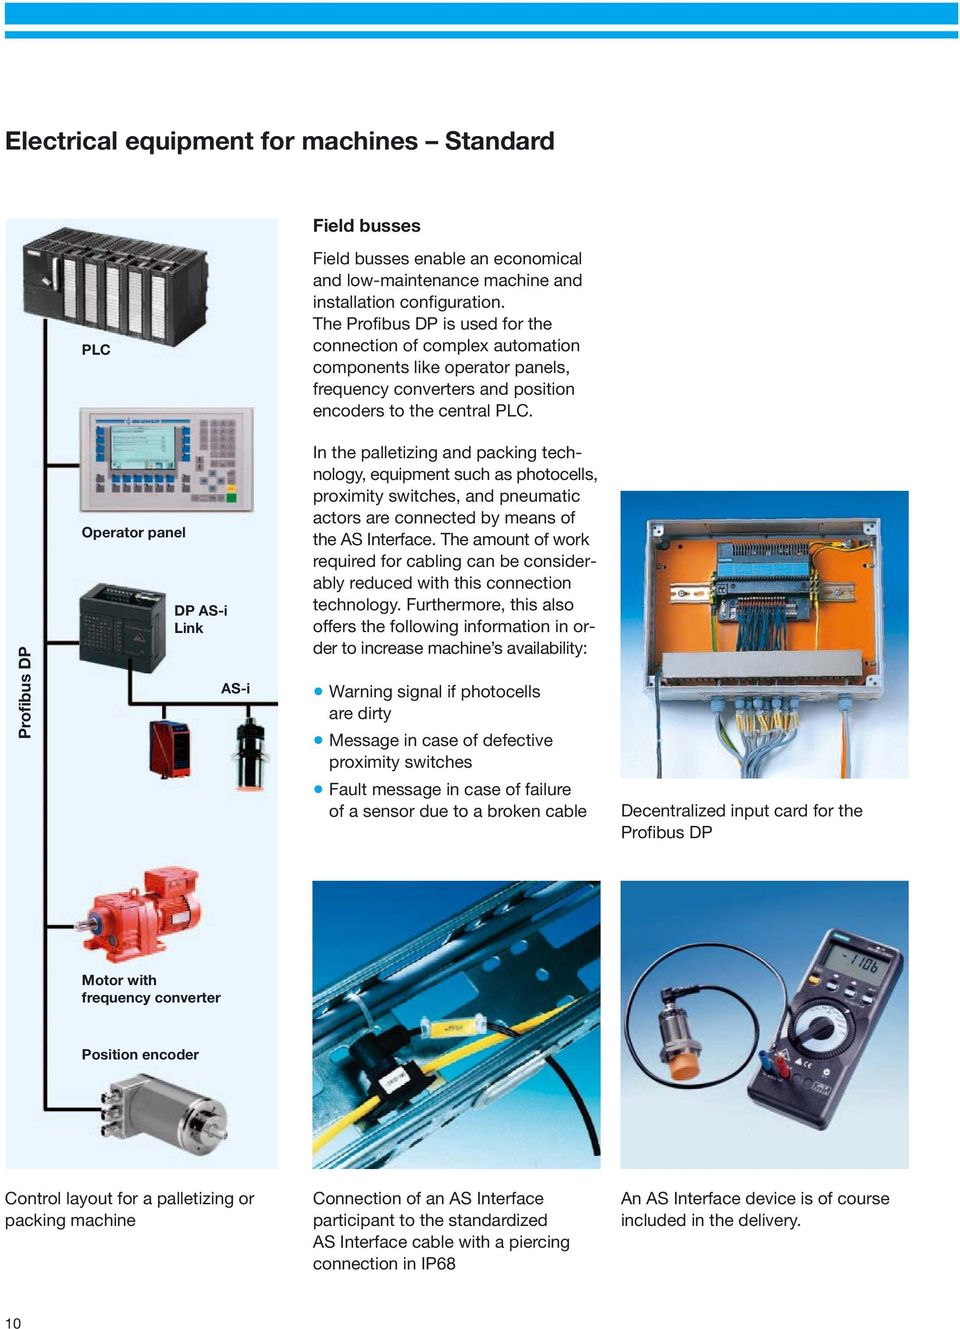 Profibus DP Operator panel DP AS-i Link AS-i In the palletizing and packing technology, equipment such as photocells, proximity switches, and pneumatic actors are connected by means of the AS